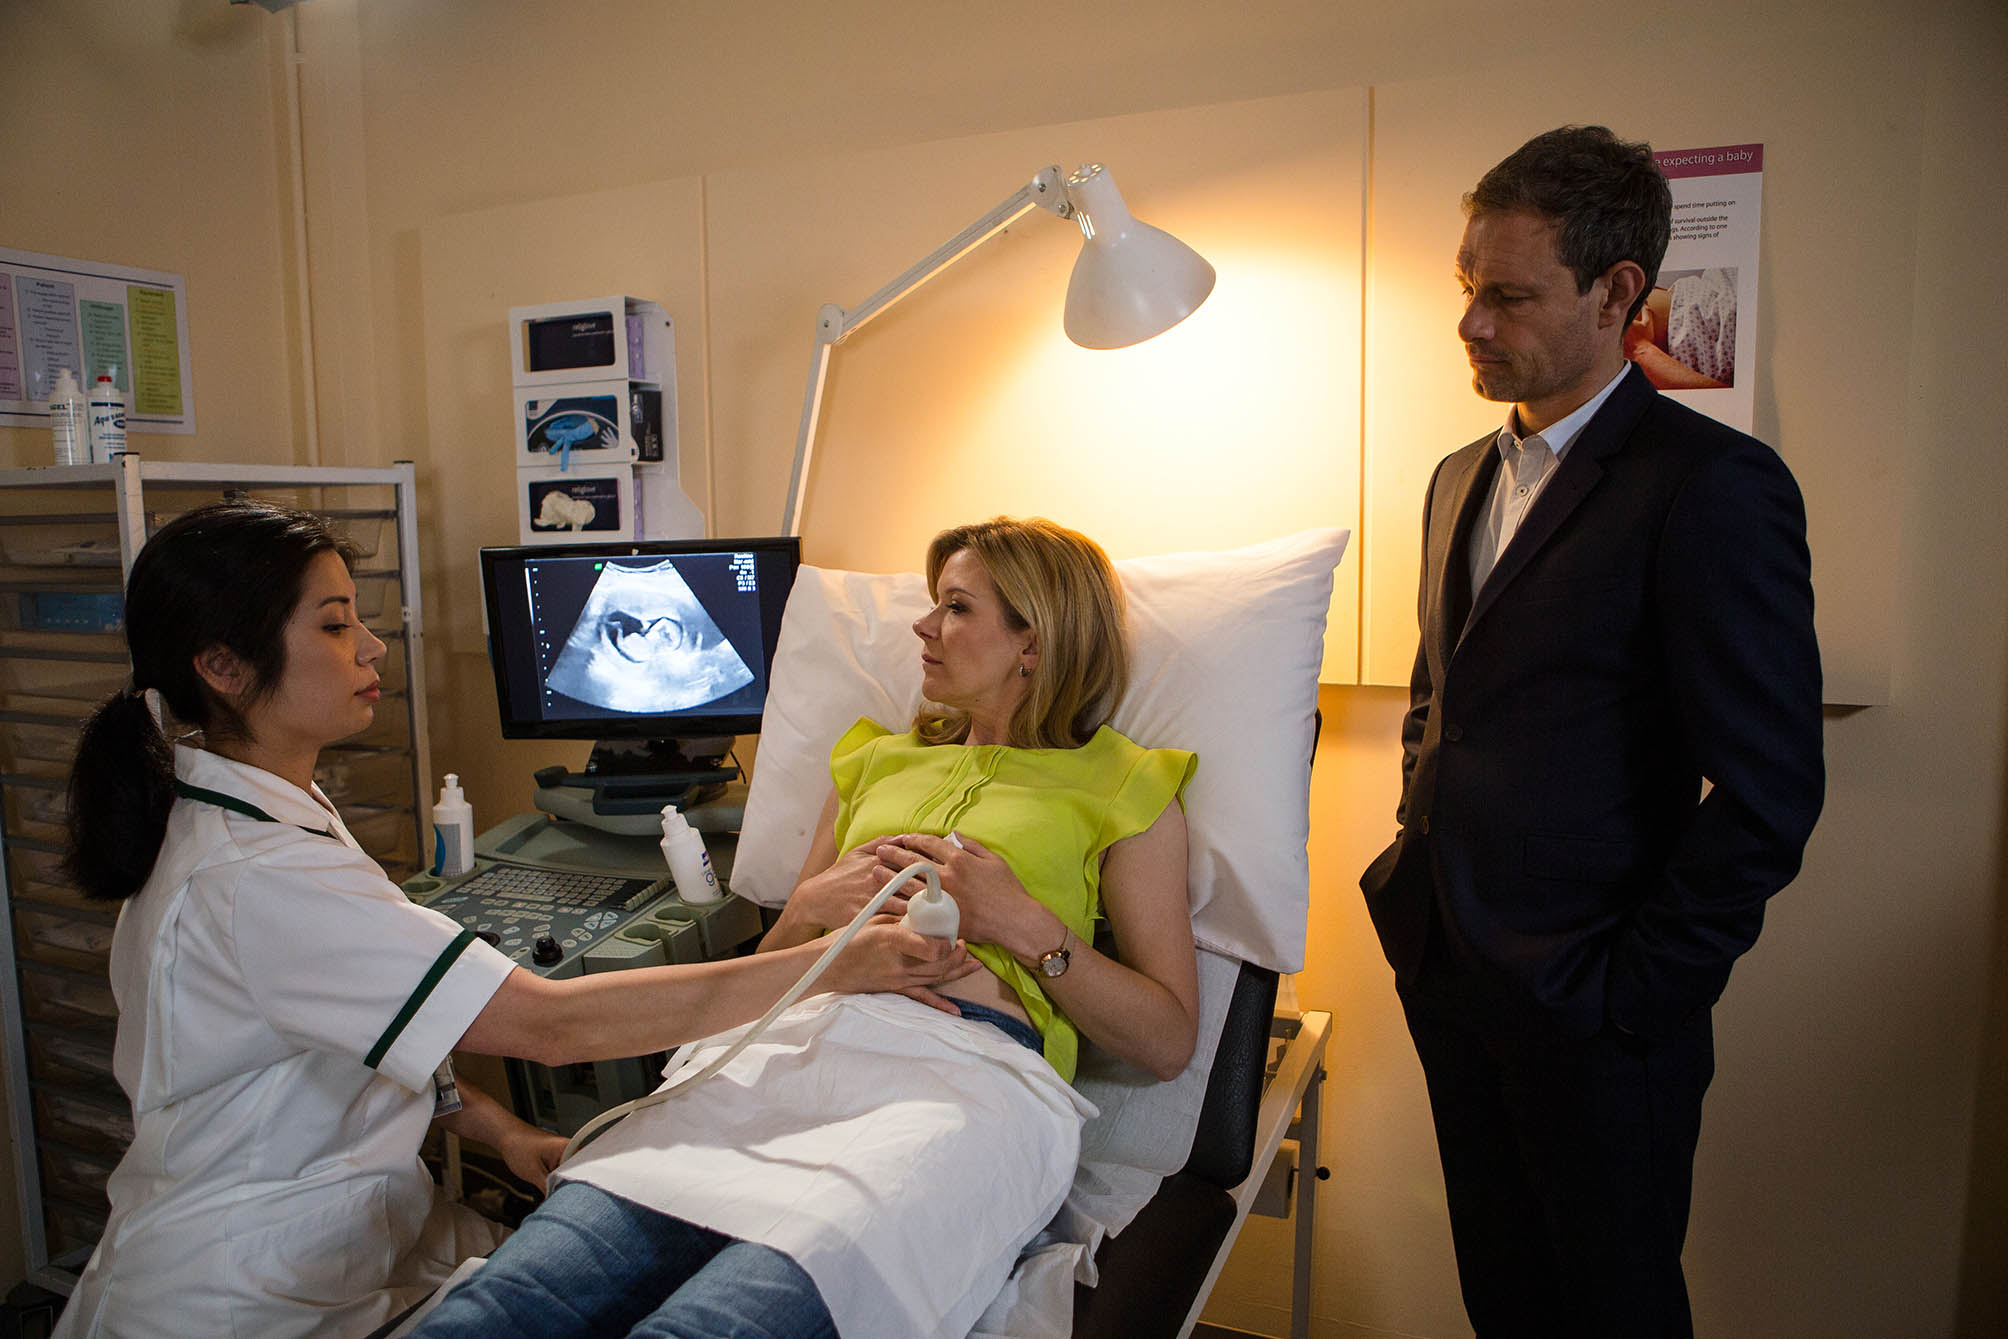 Coronation Street: Leanne stays in Weatherfield, reunites with Nick and her pregnancy is outed!